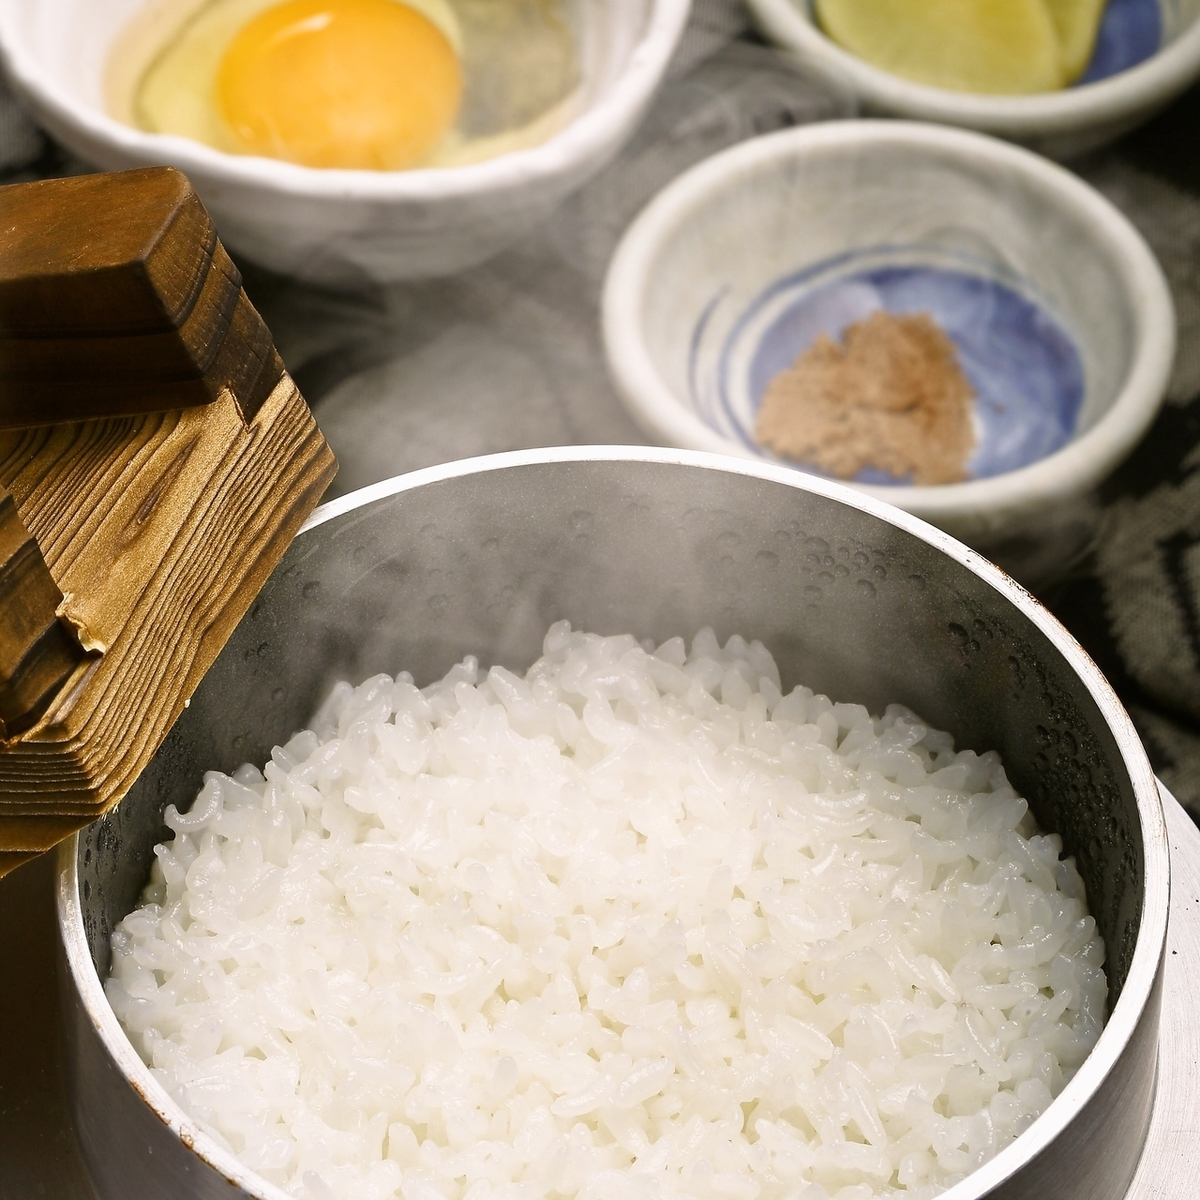 Tosa Jiro's freshly cooked eggs and kakamehi